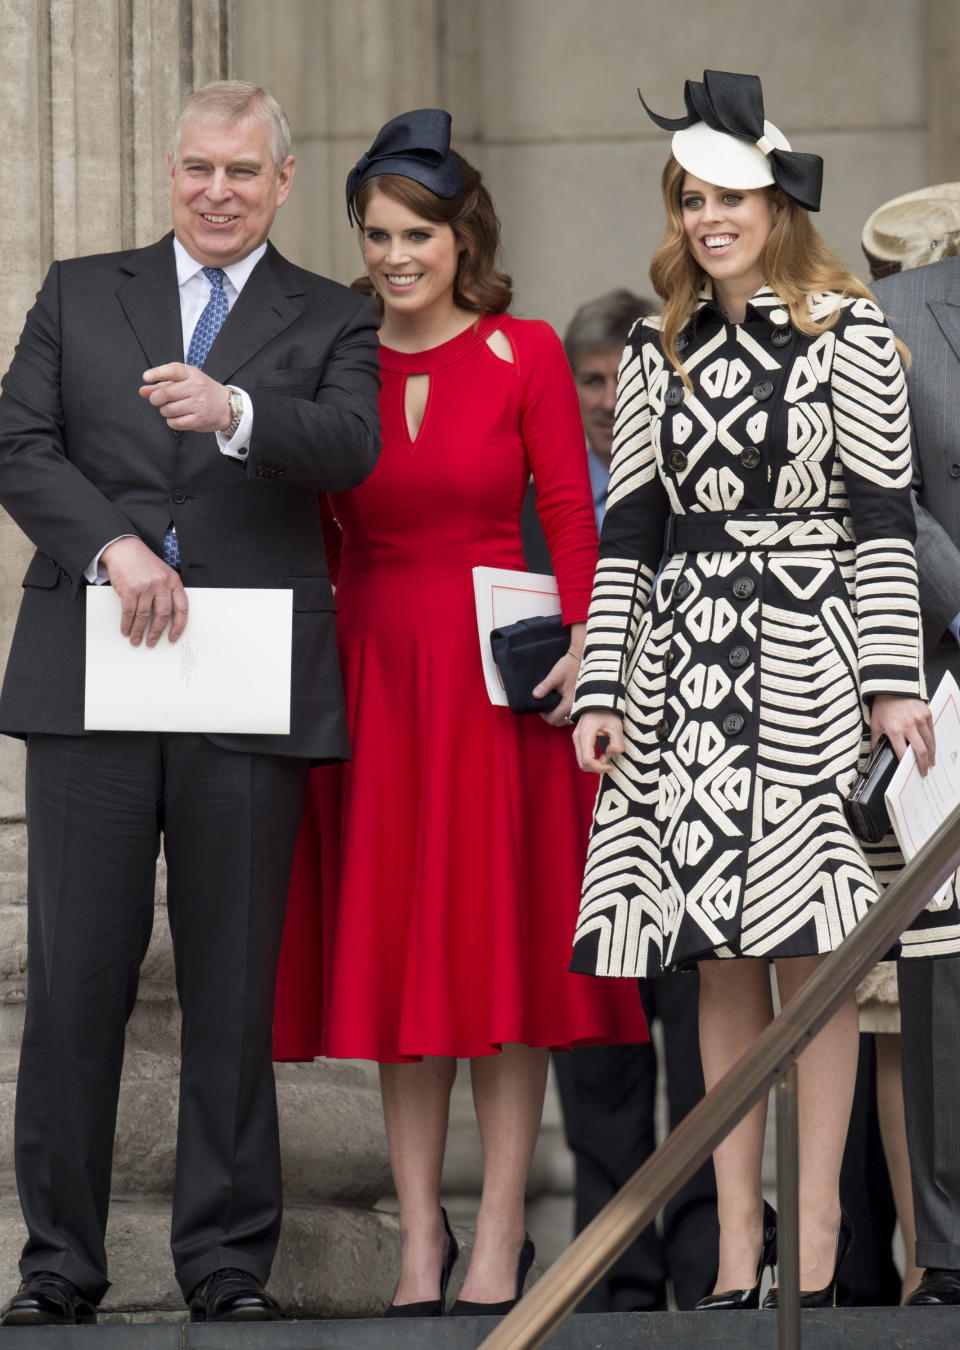 Prince Andrew with Princess Eugenie and Princess Beatrice